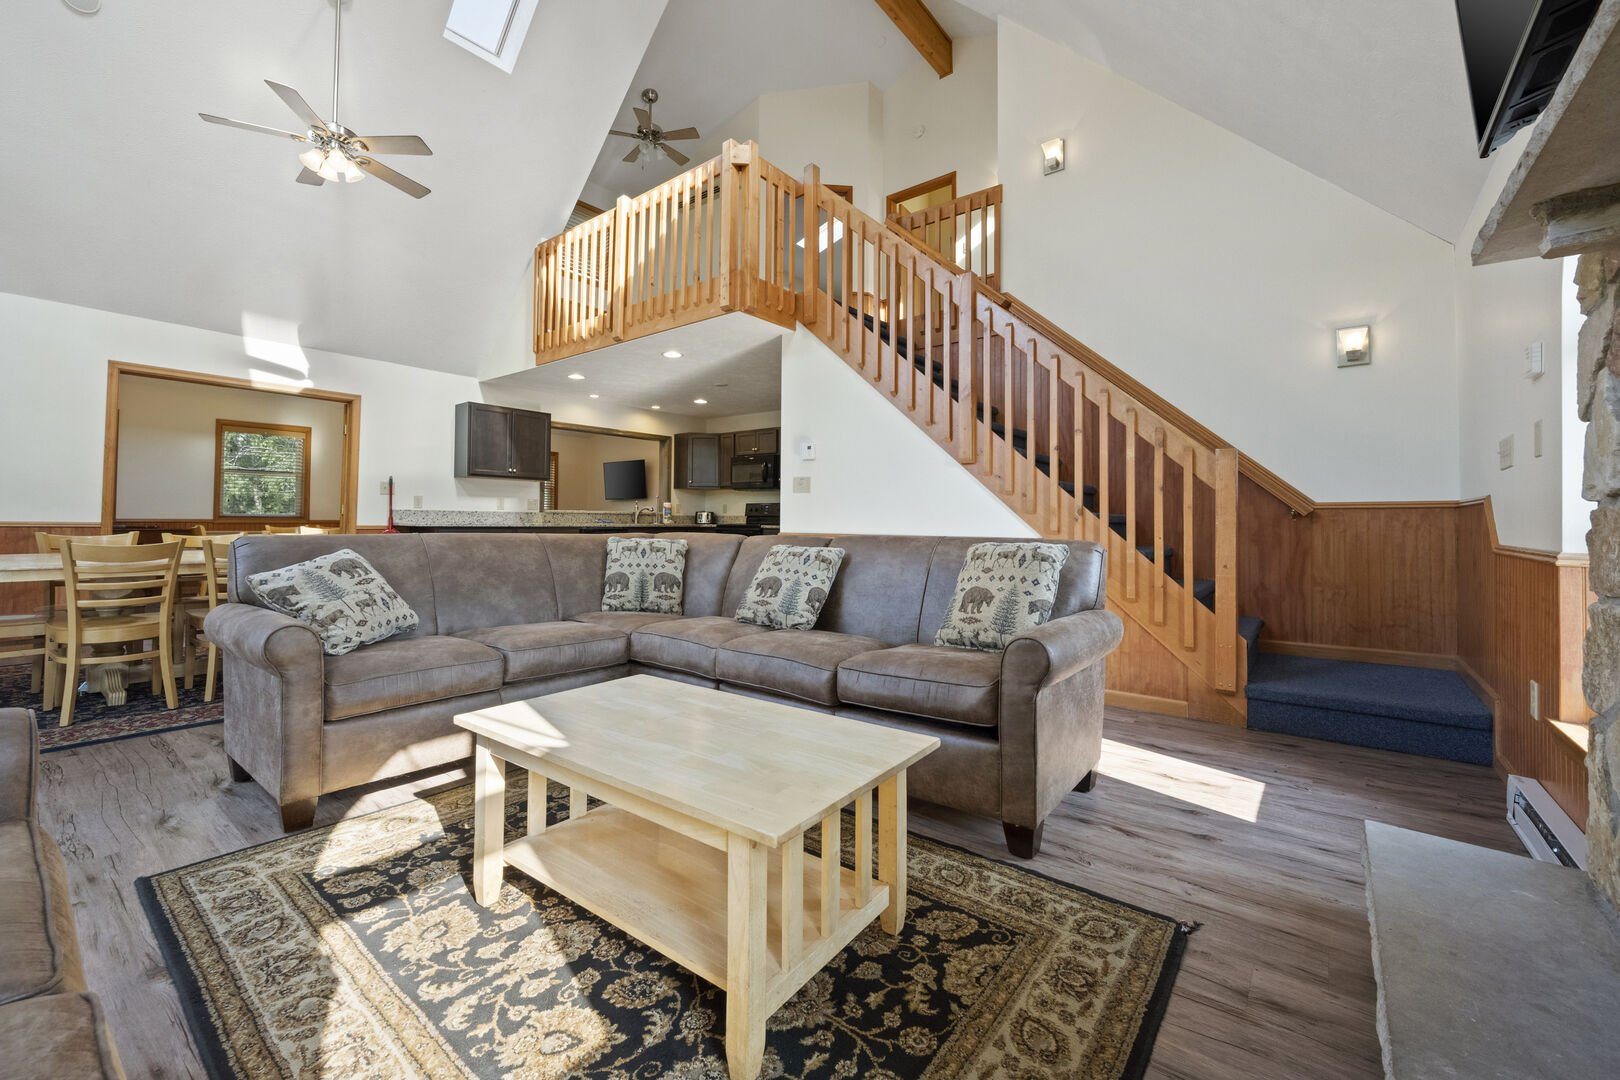 Couch in living room with nearby staircase.